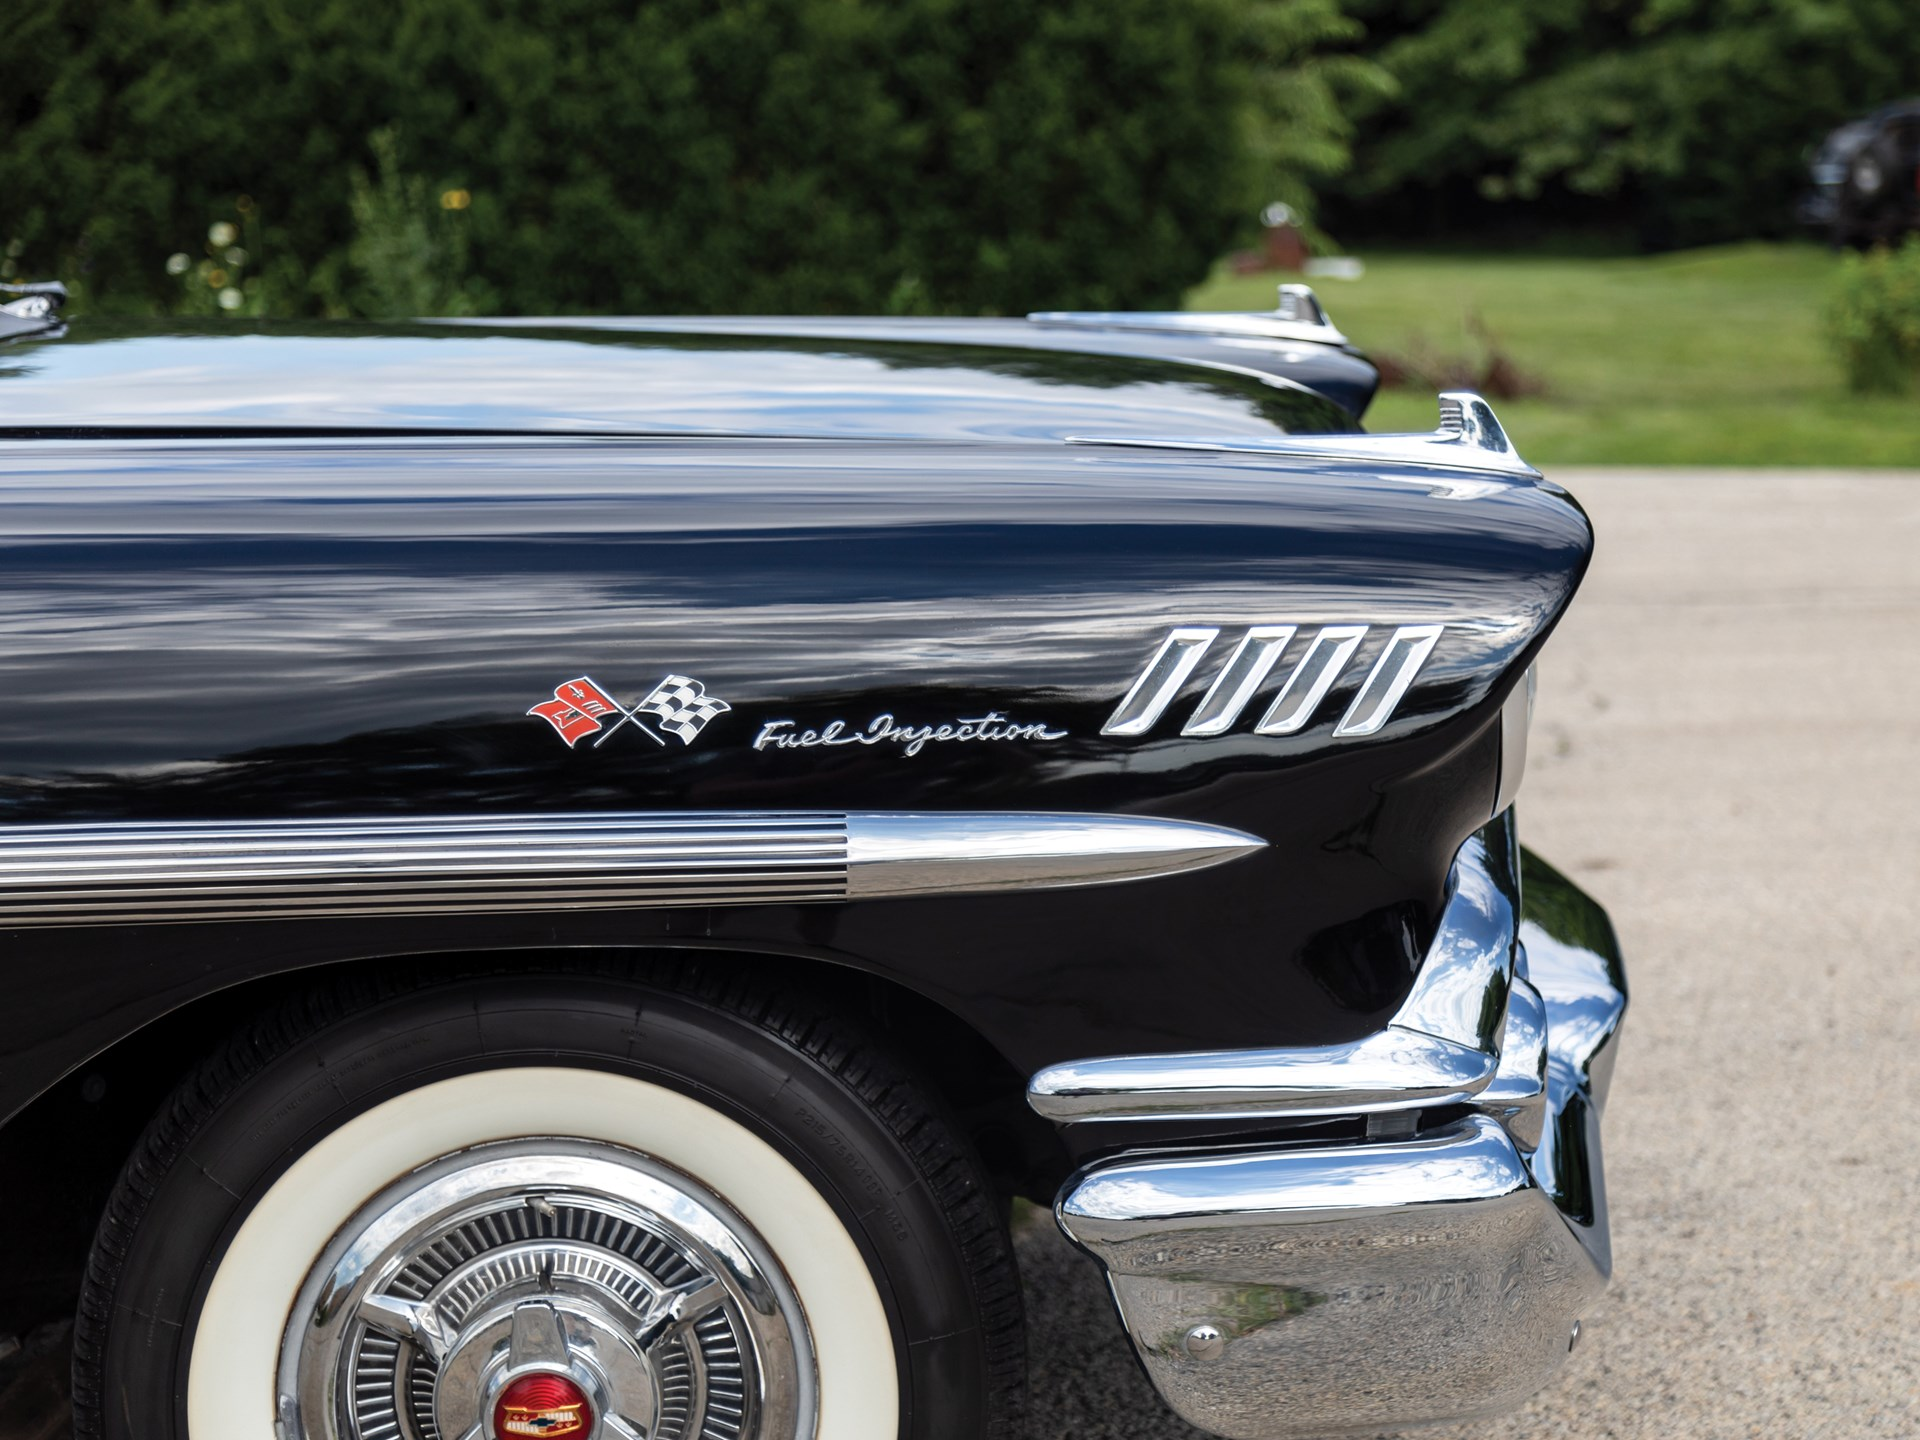 1958 Chevrolet Impala 'Fuel-Injected' Convertible